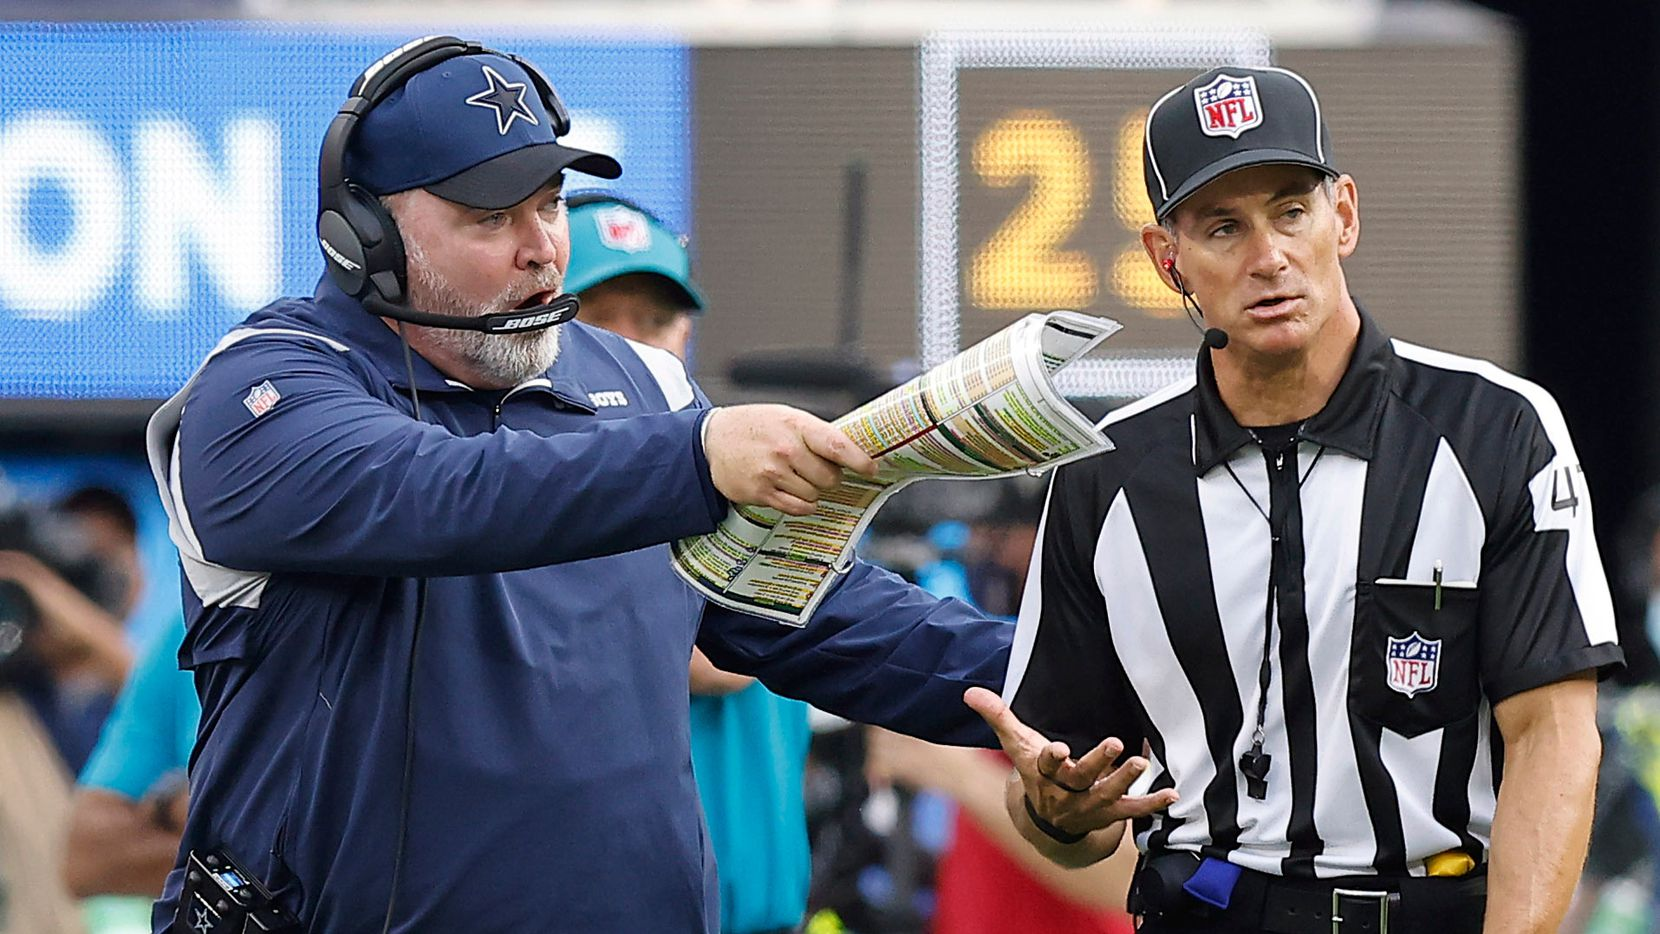 Dallas Cowboys head coach Mike McCarthy questions a call with the side judge during the third quarter against the Los Angeles Chargers at SoFi Stadium in Inglewood, California, Sunday, September 19, 2021.